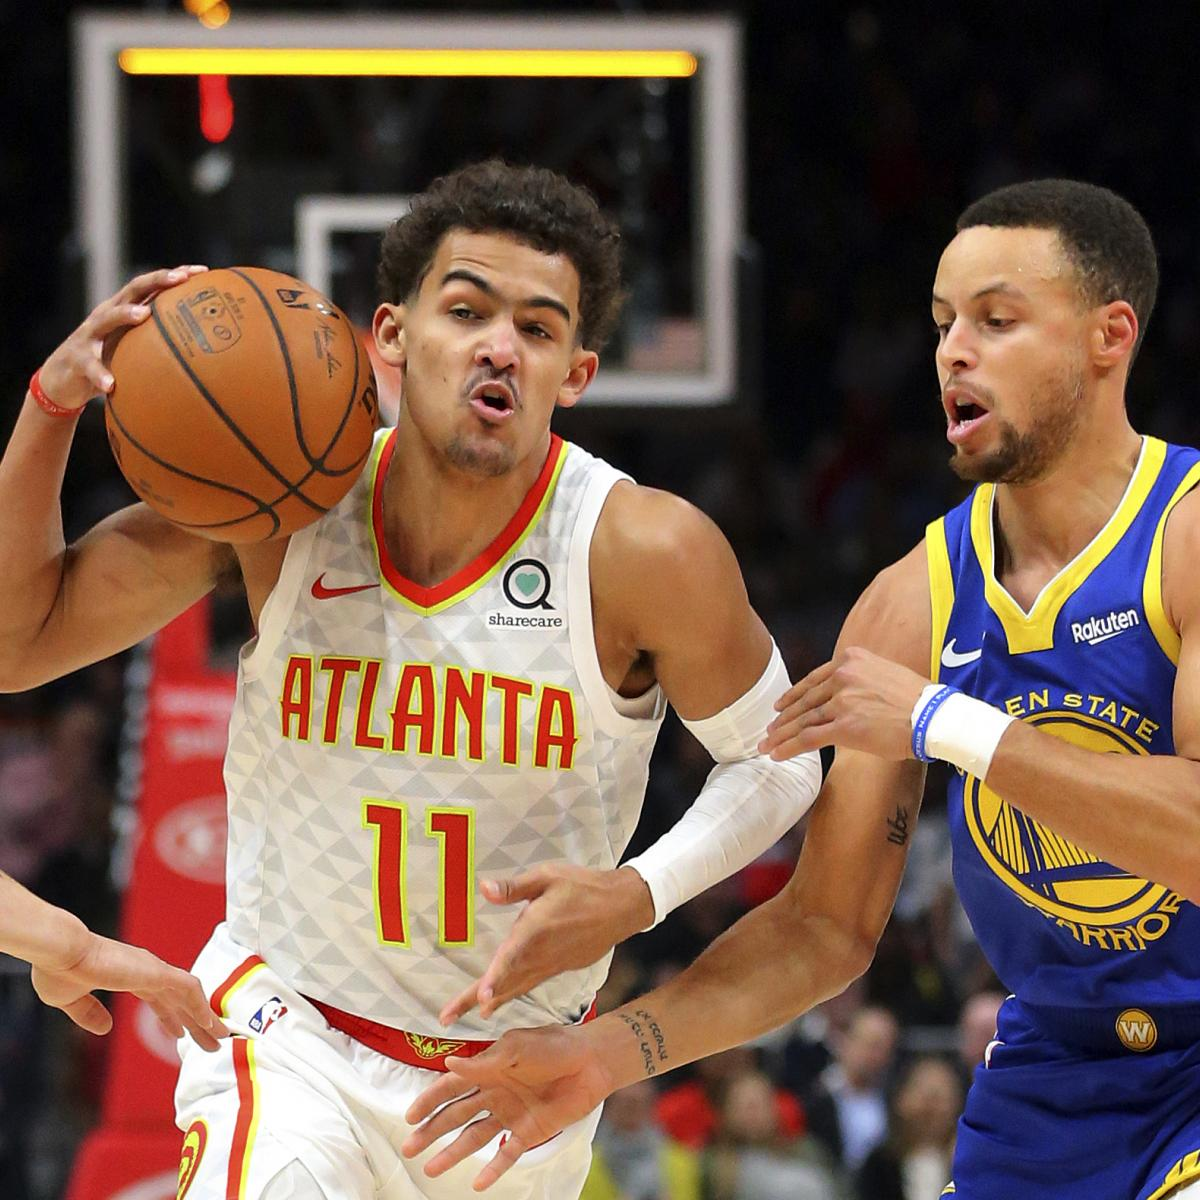 Trae Young Gets Fired Up to Play Stephen Curry, Kyrie Irving, Damian Lillard